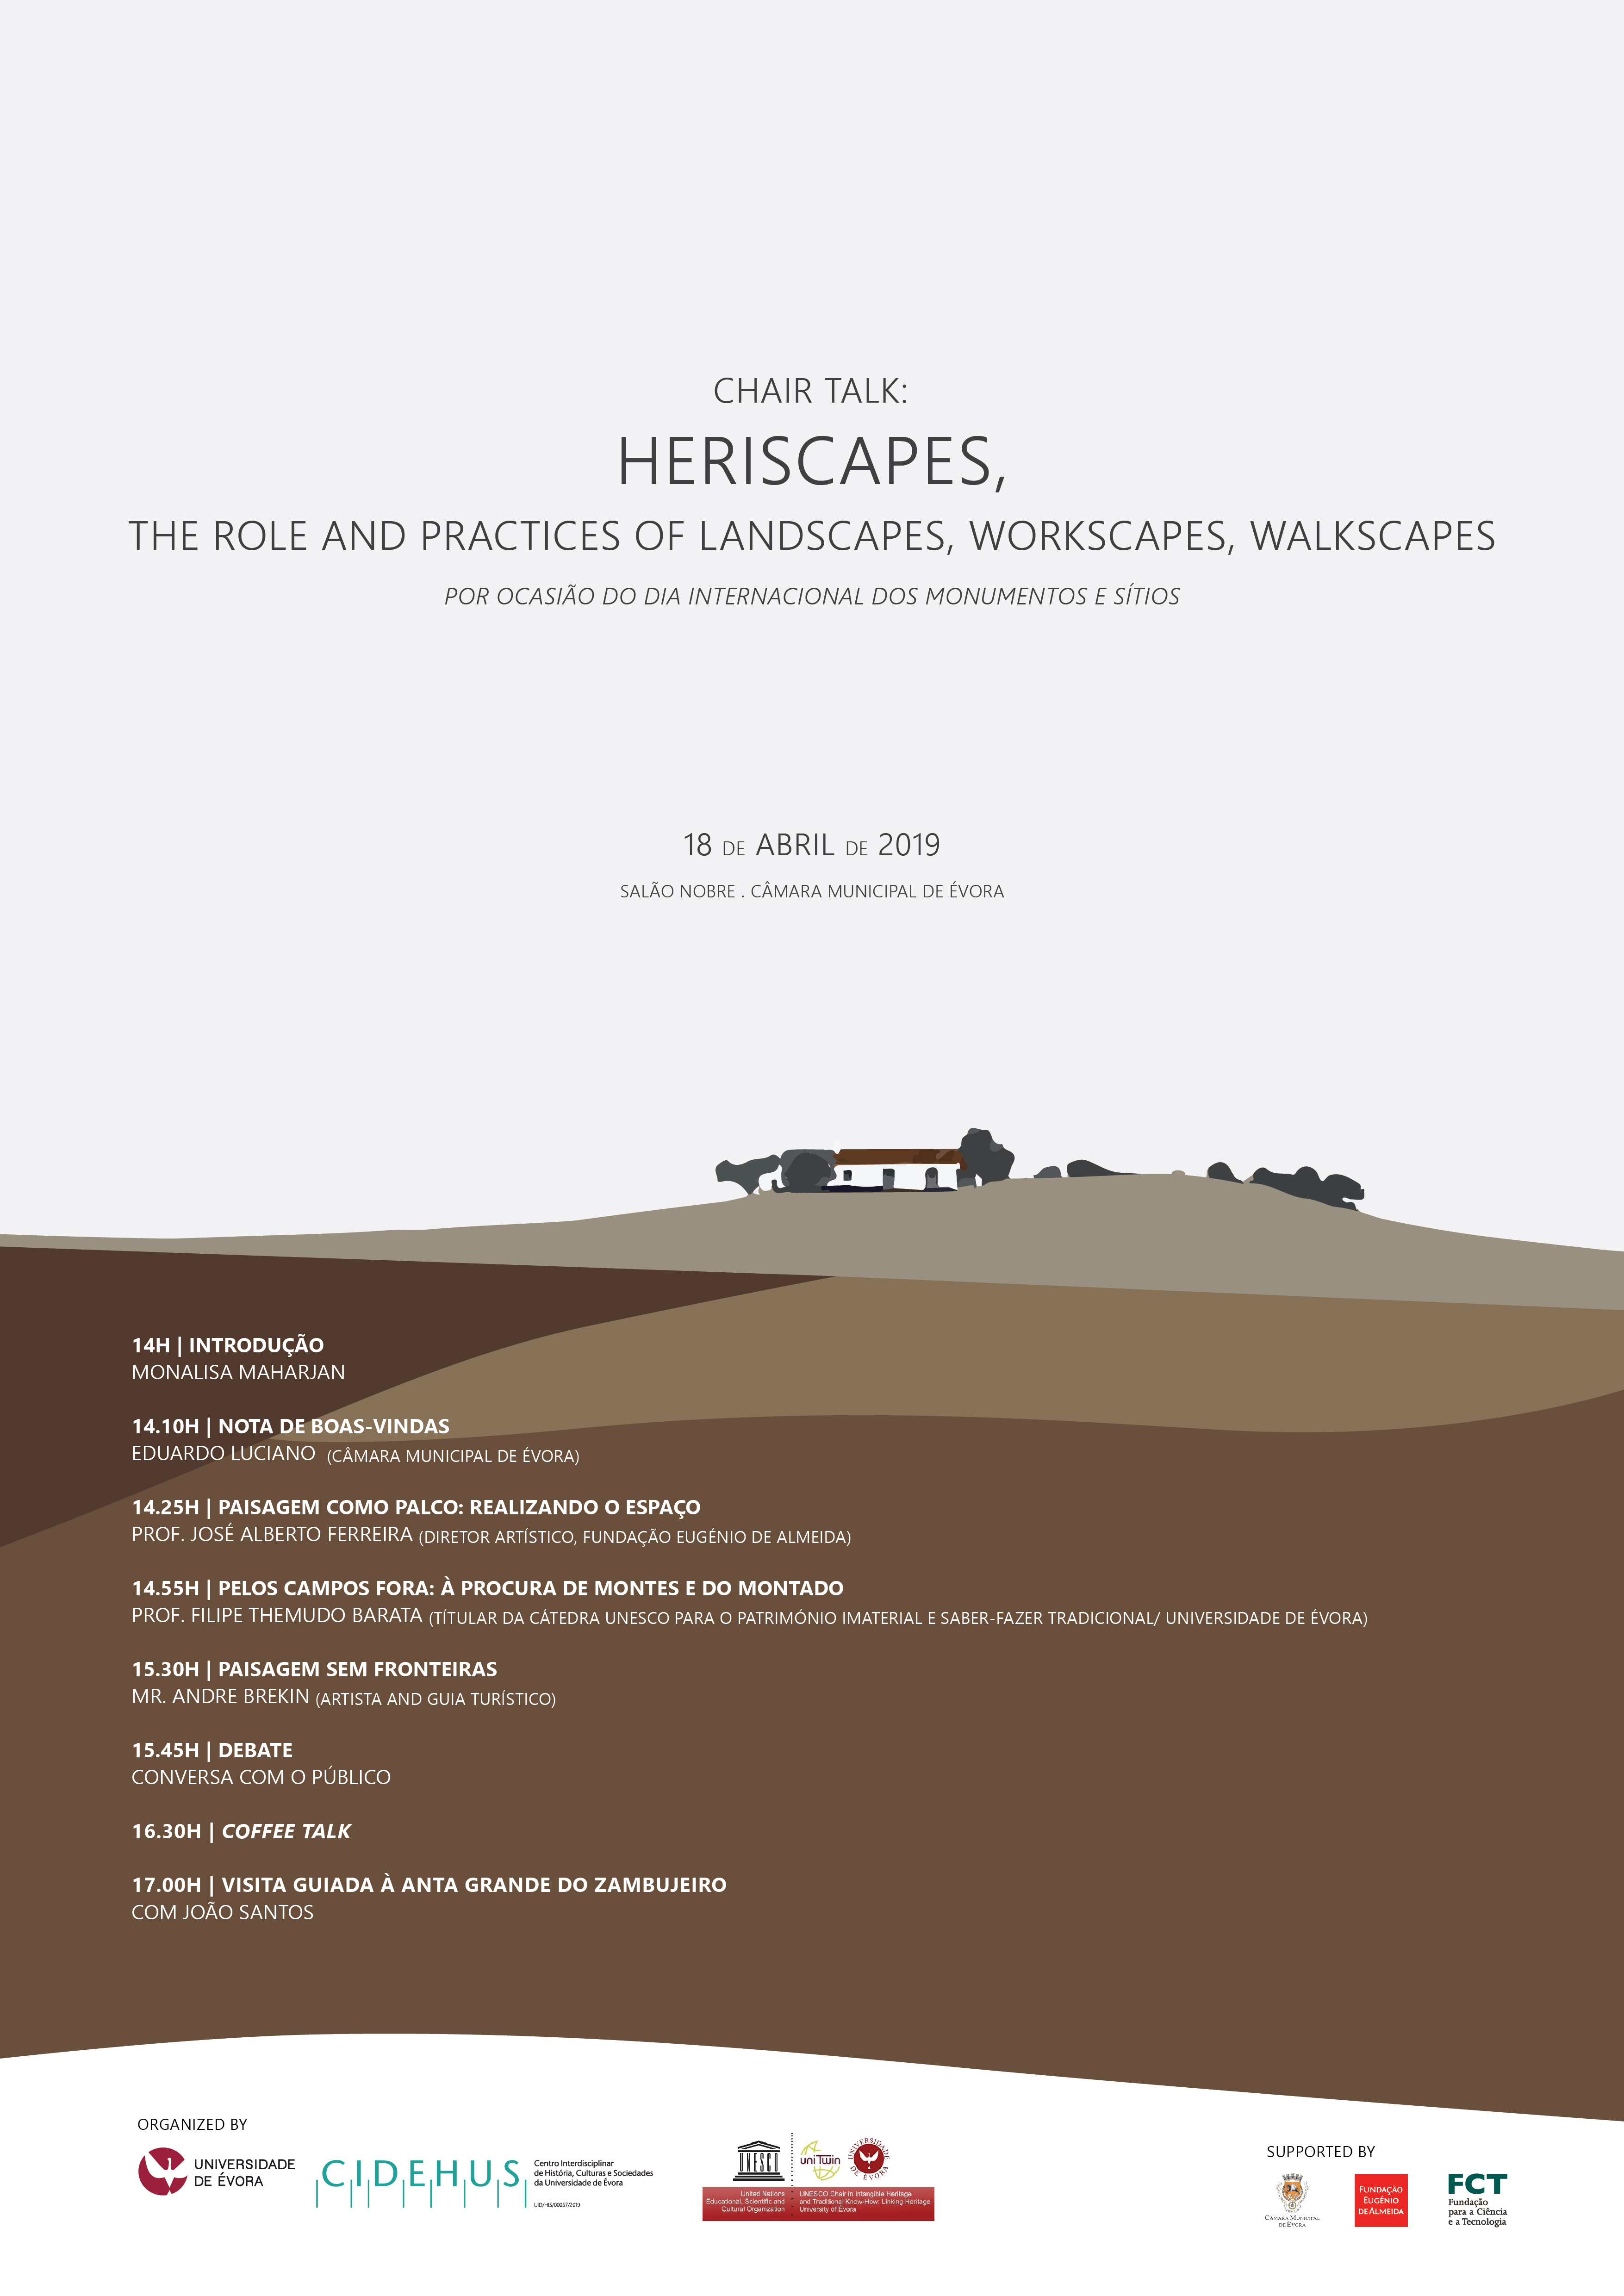 HERISCAPES, the role and practices of landscapes, workscapes, walkscapes